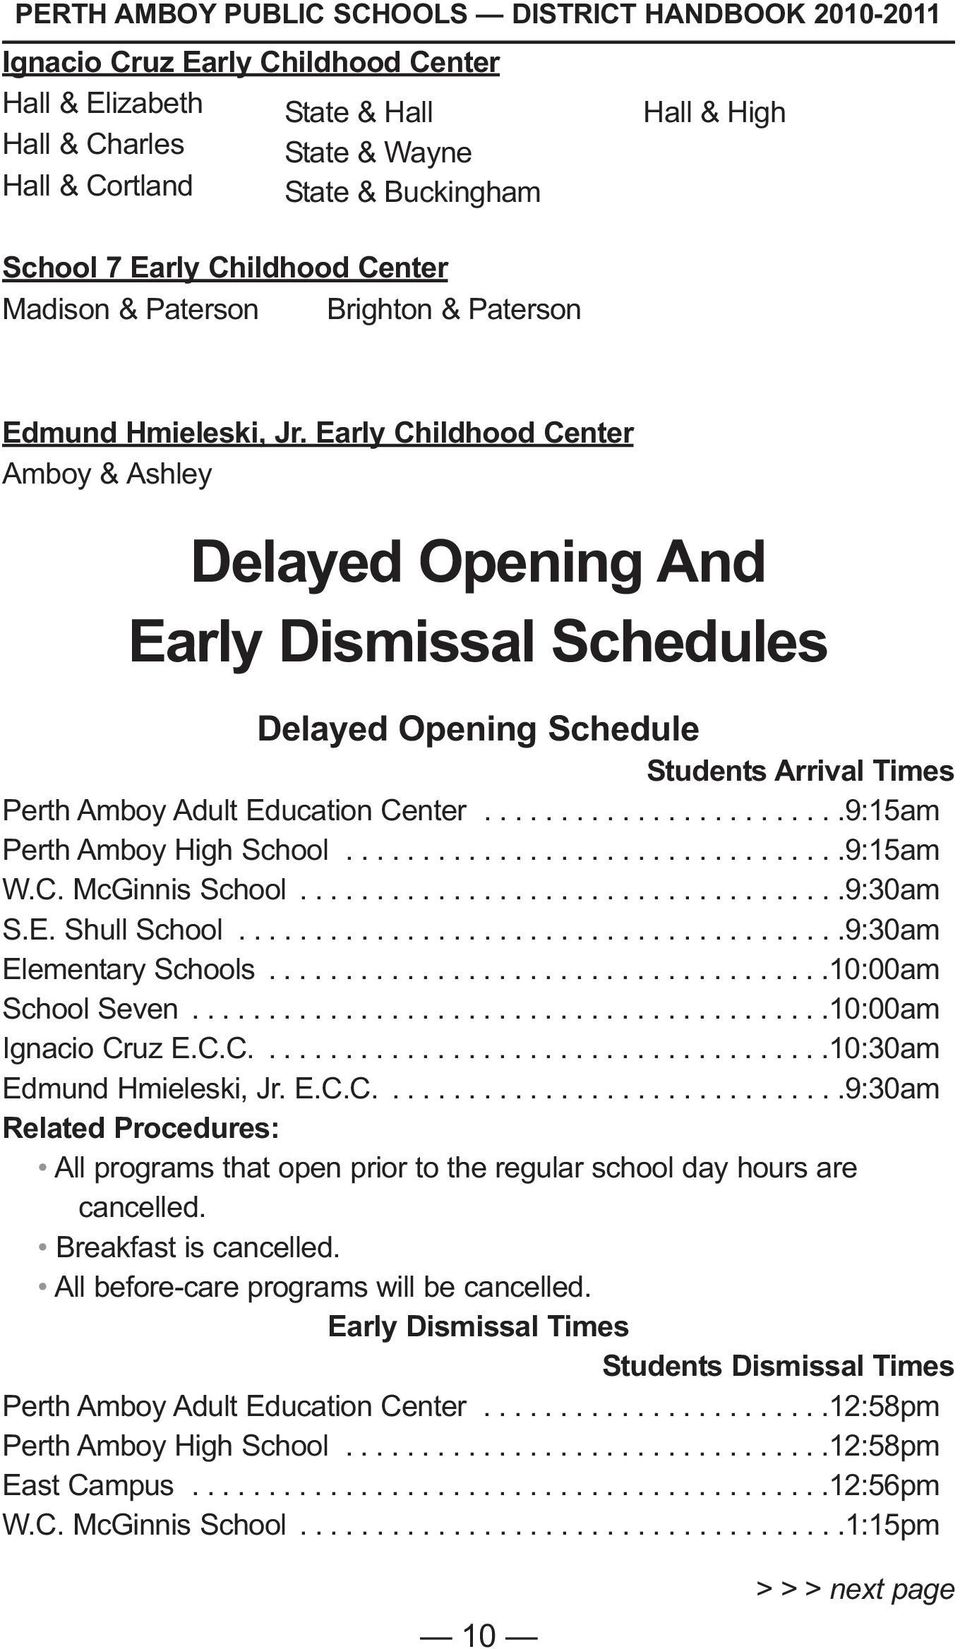 Early Childhood Center Amboy & Ashley Delayed Opening And Early Dismissal Schedules Delayed Opening Schedule Students Arrival Times Perth Amboy Adult Education Center........................9:15am Perth Amboy High School.